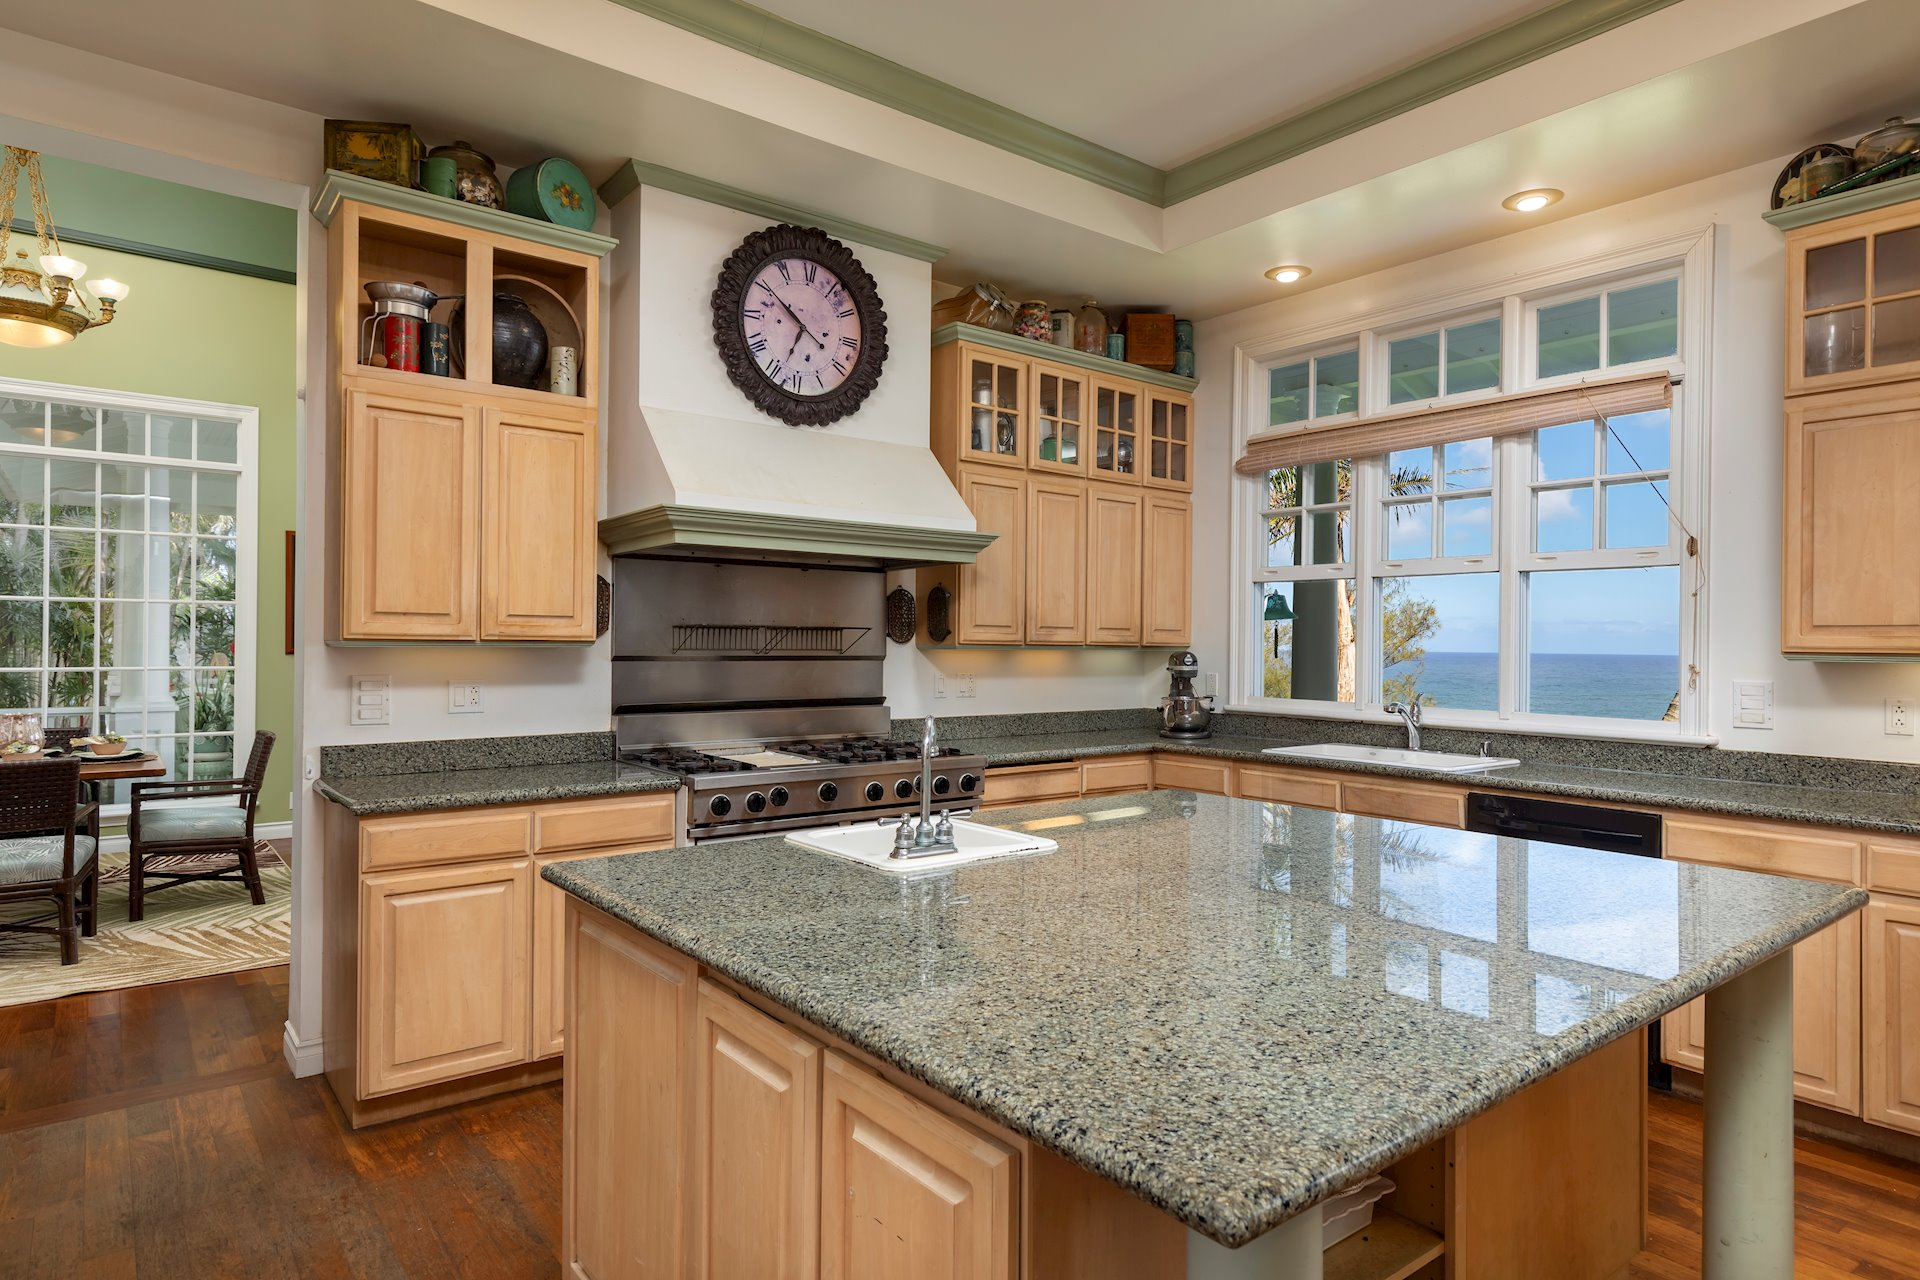 Ocean views from every kitchen window.